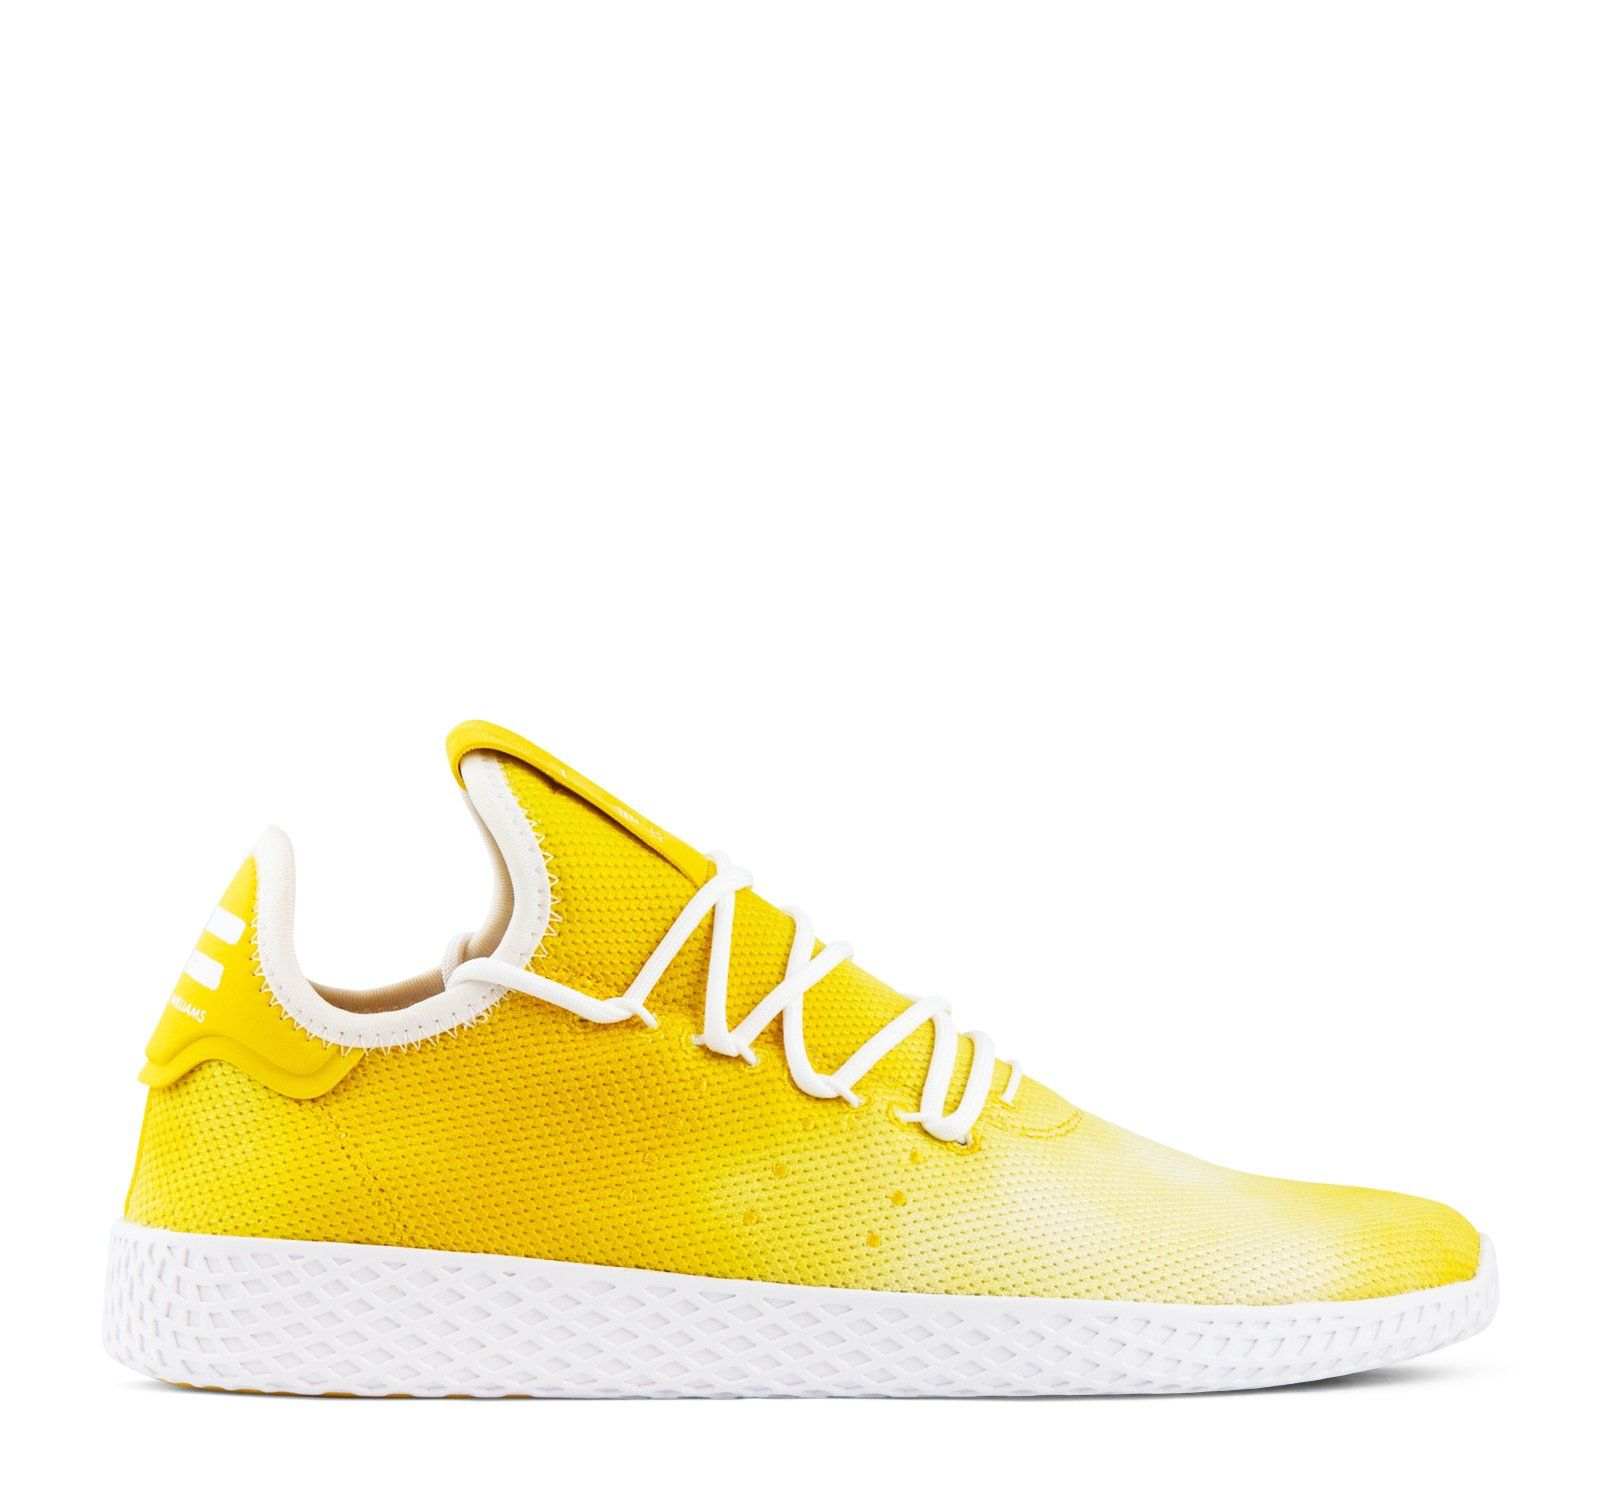 f027497b1eb7c Adidas Originals Pharrell Williams Tennis Hu DA9617 Men s - Yellow White